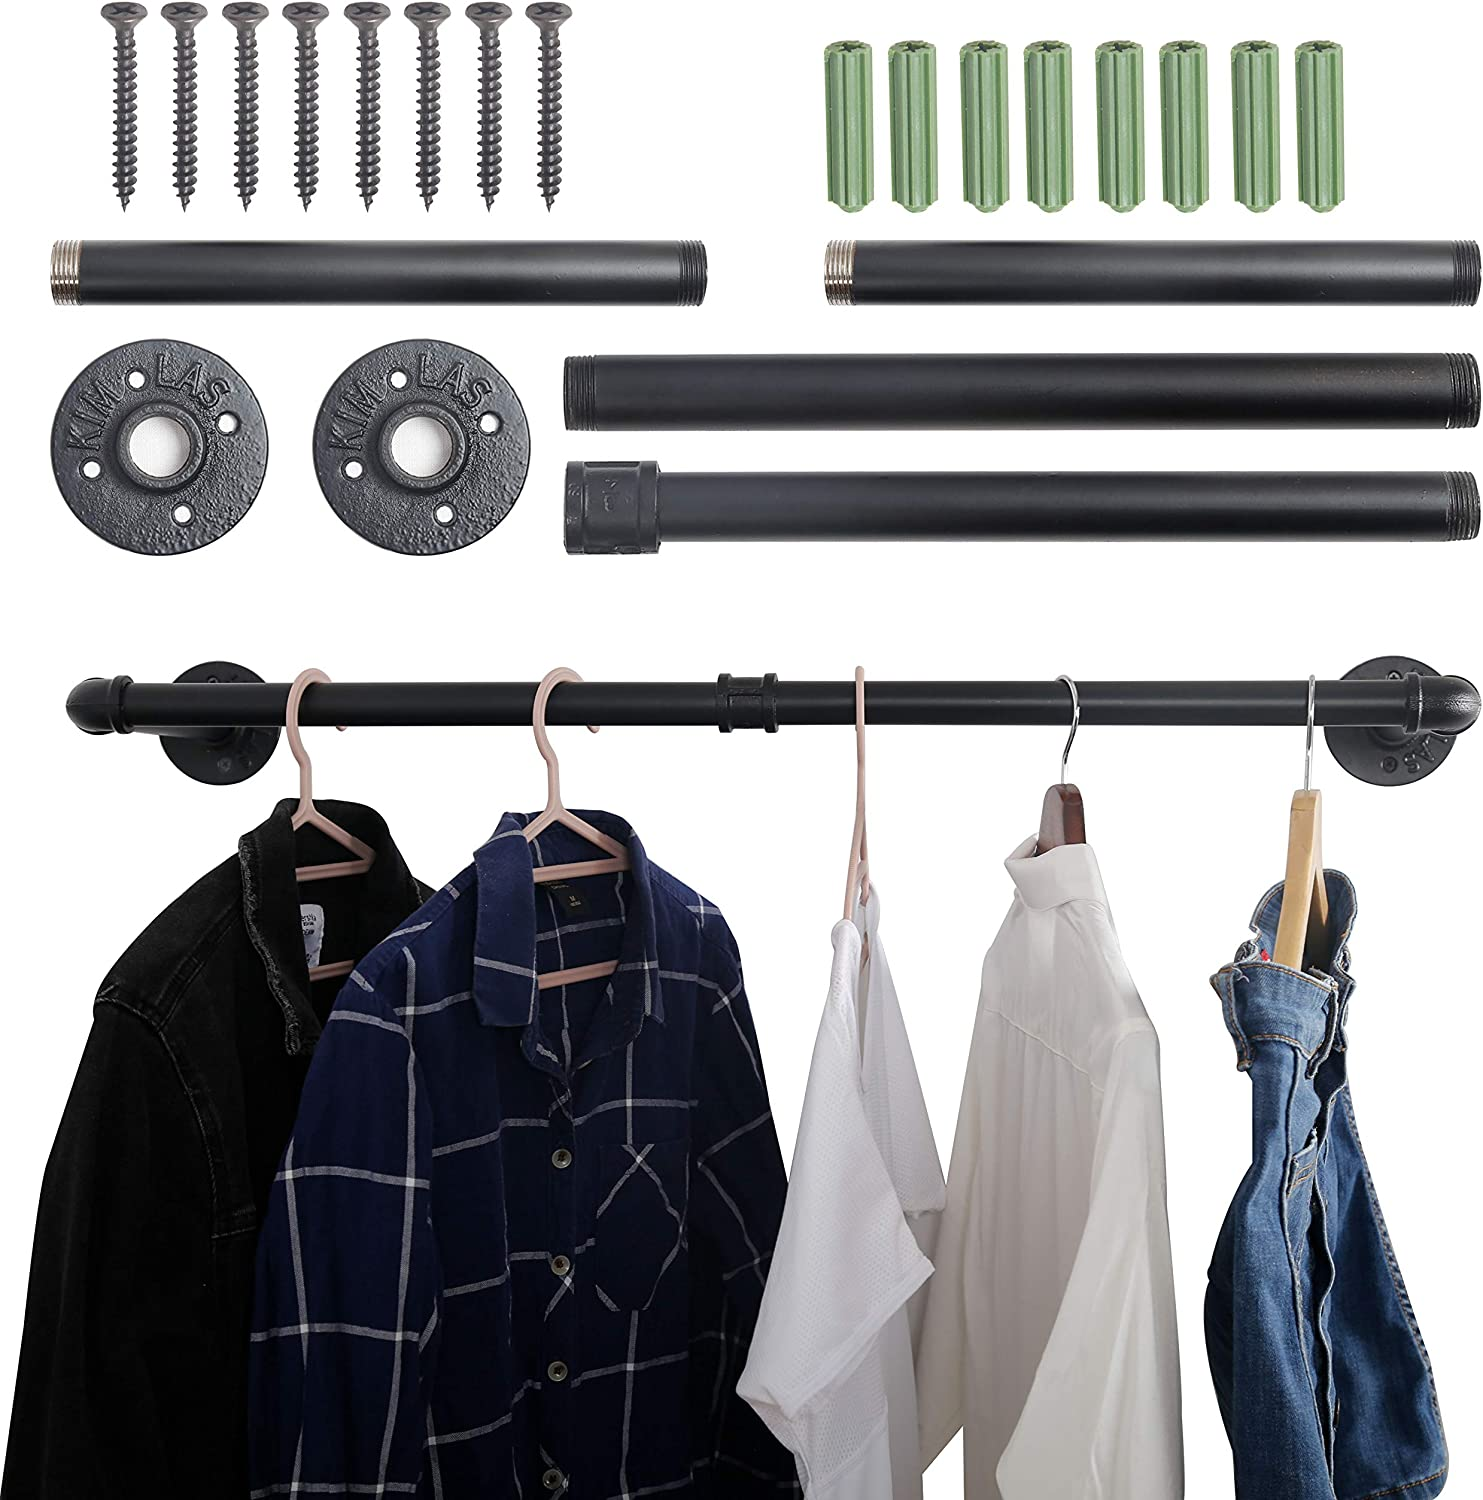 WEBI Clothing Rack Wall Mount,32'' Industrial Pipe Clothes Rack for Hanging Clothes,Heavy Duty Iron Garment Rack Bar,Retail Display Clothes Rod for Closet,Laundry Room,Black